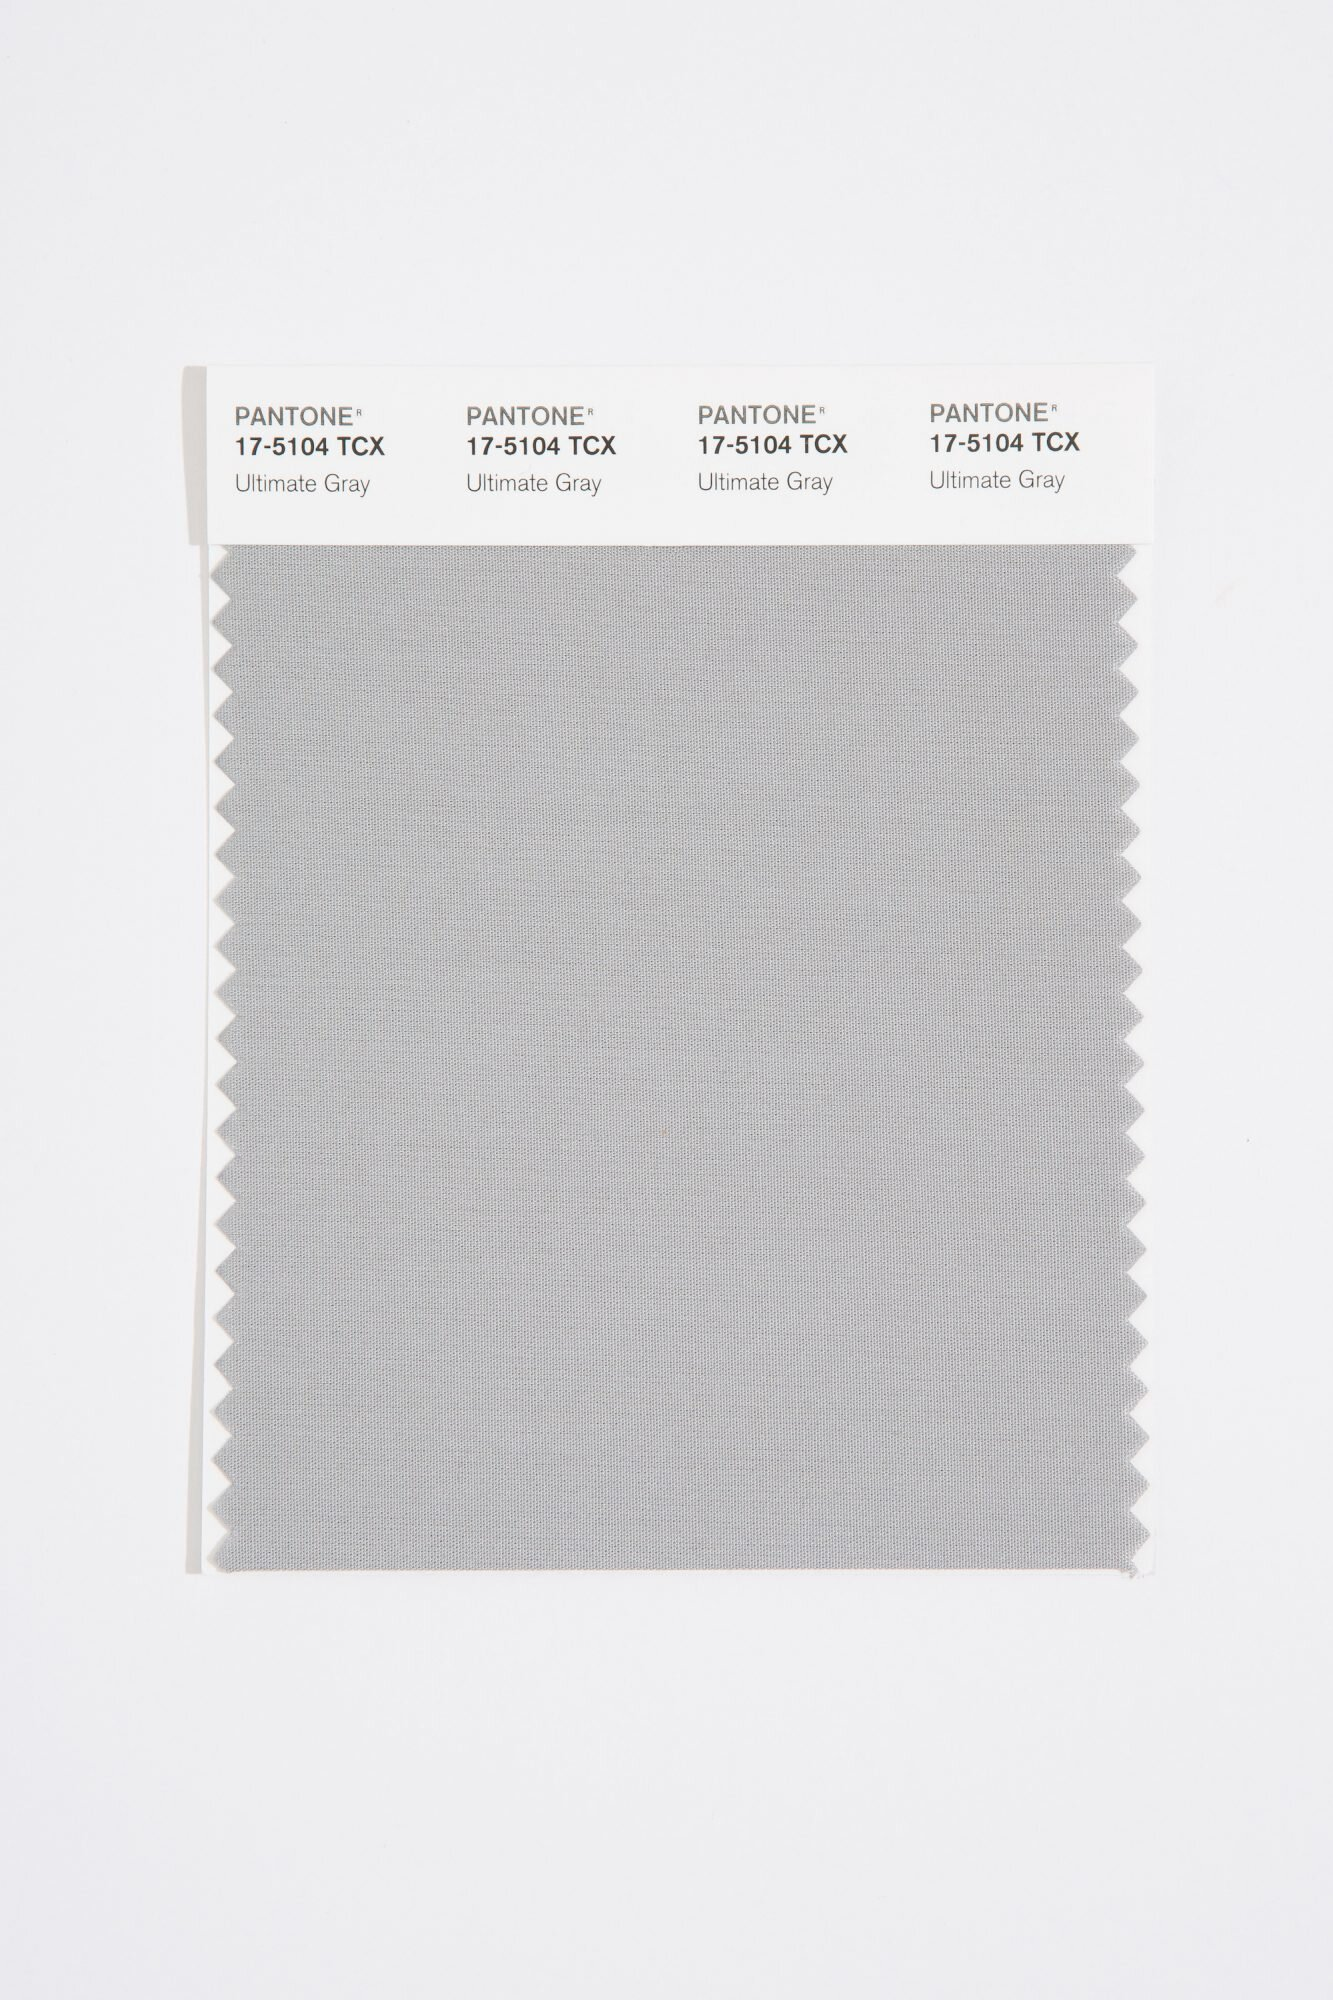 Pantone Color of the Year 2021, Ultimate Gray